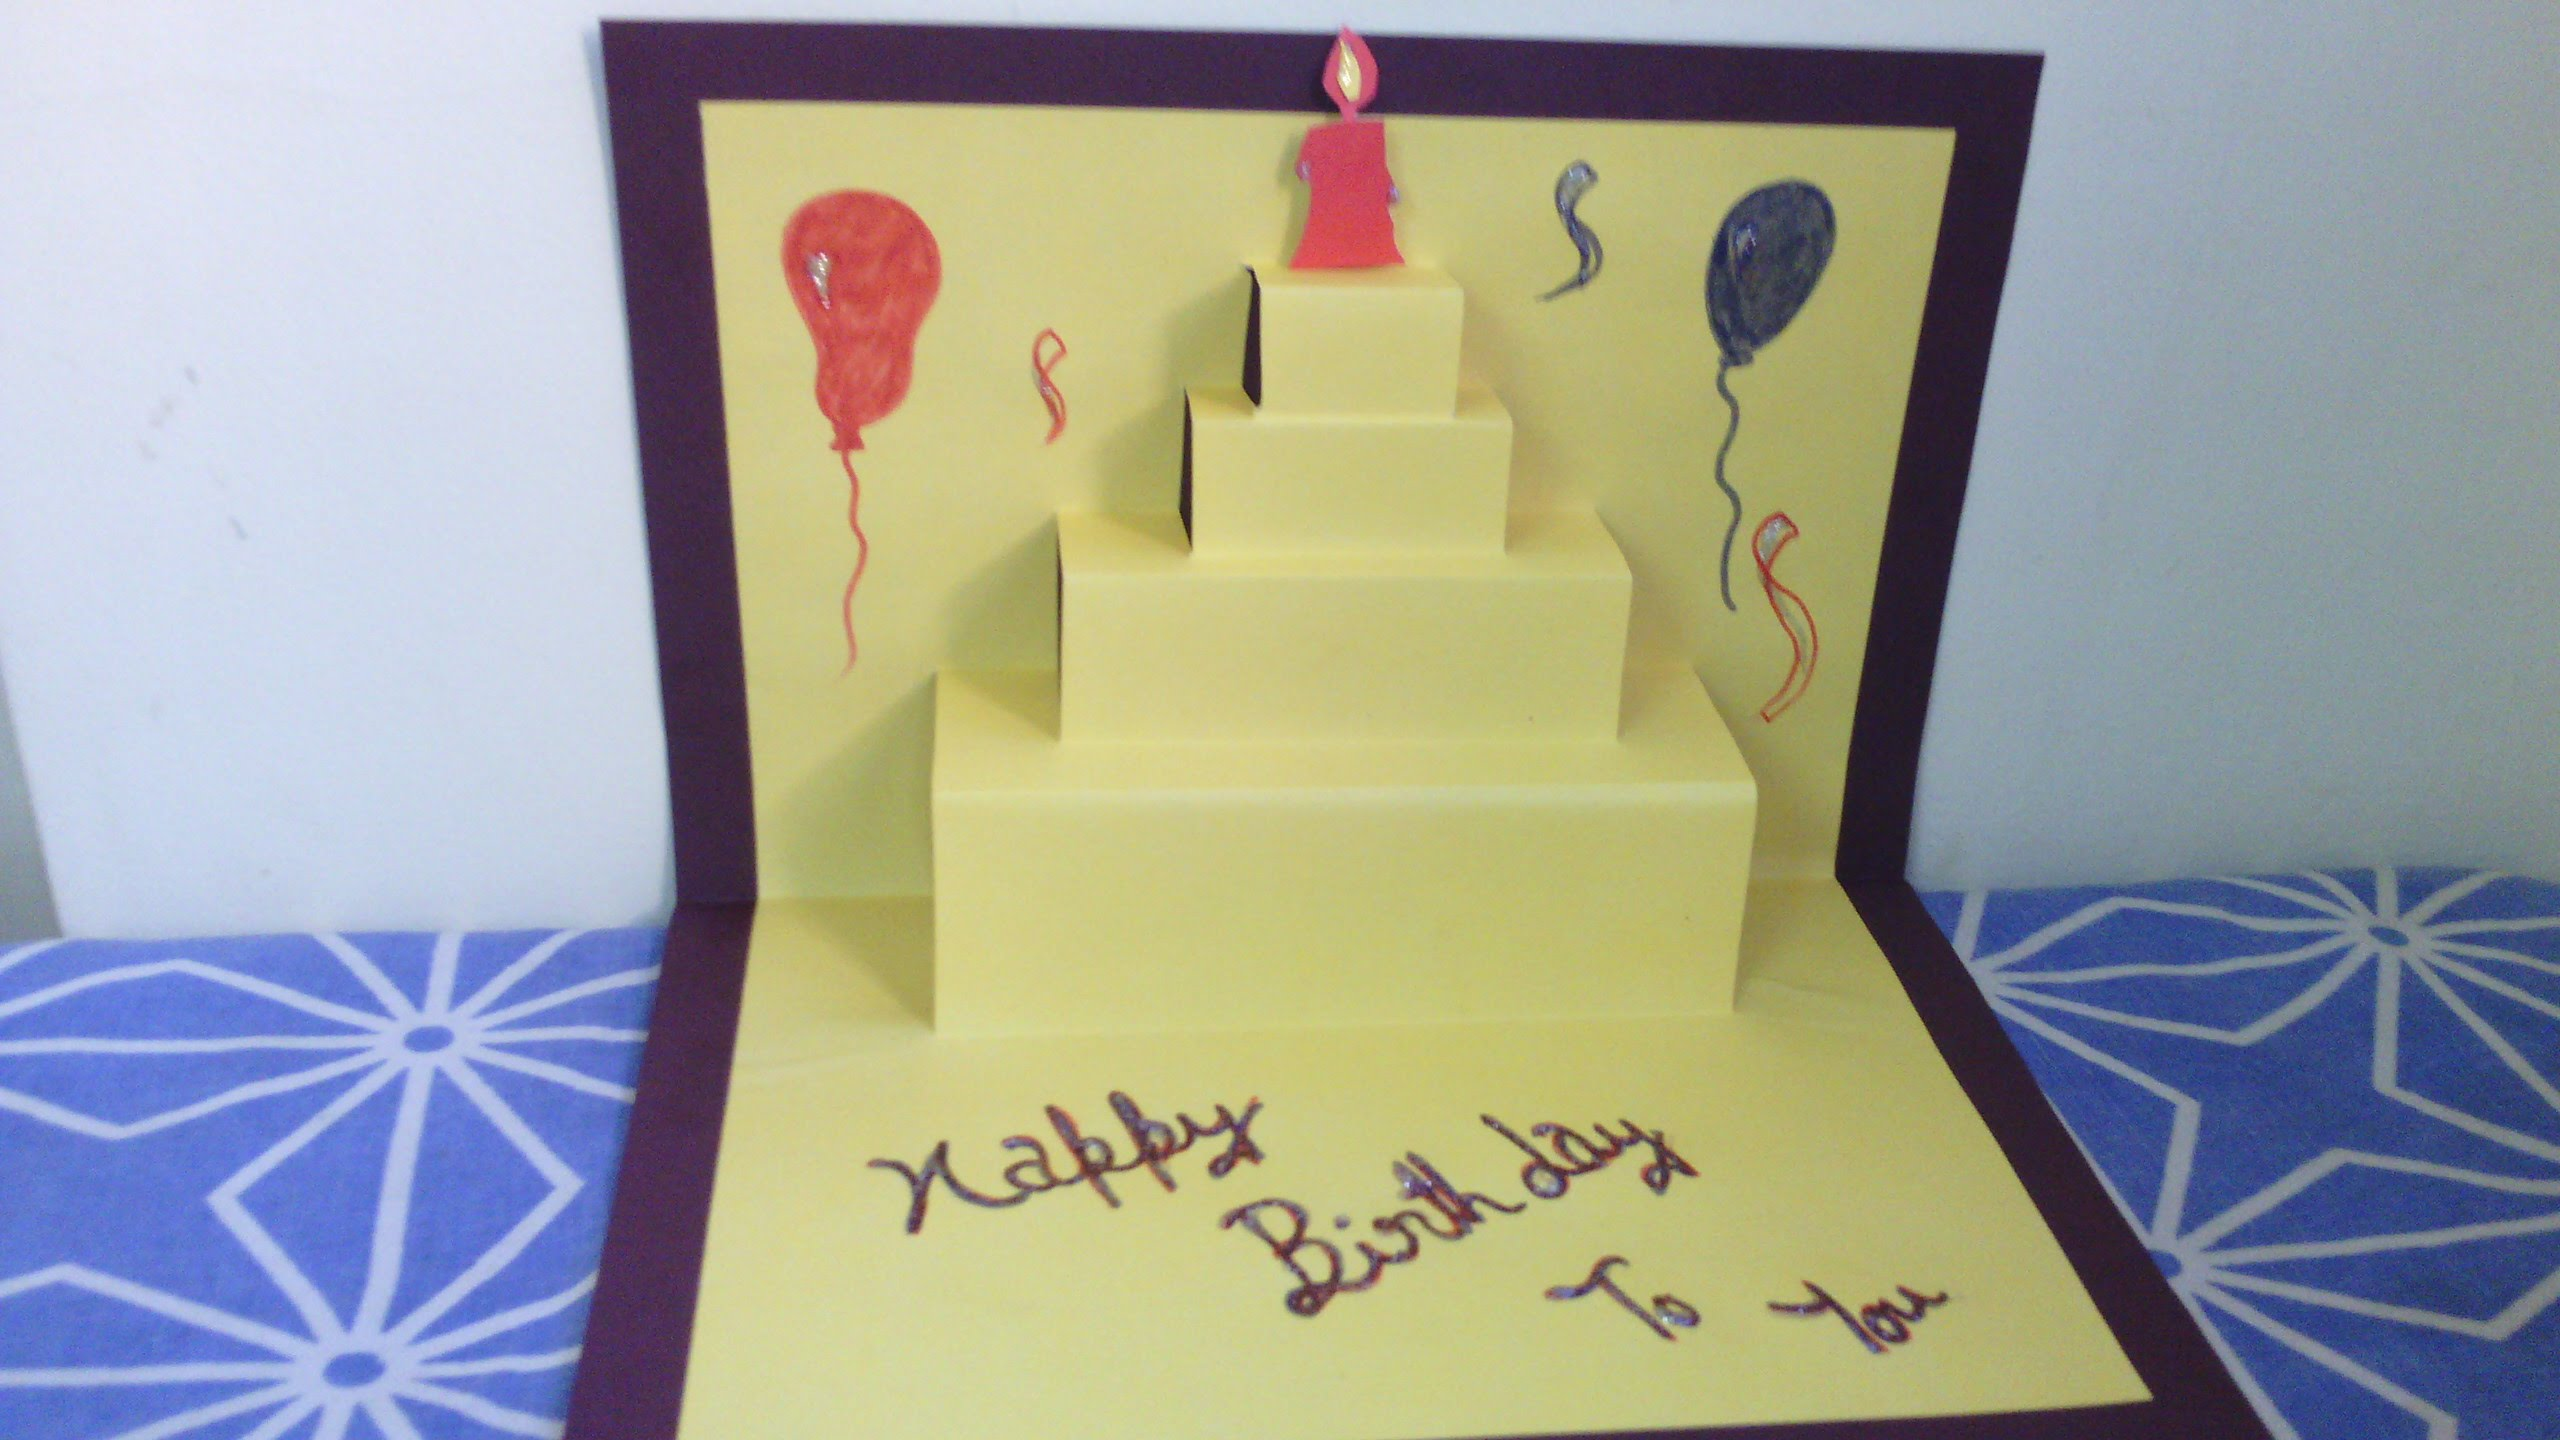 make a birthday wish picture ; Birthday-Greetings-For-Best-Friend-Tumblr-Together-With-Birthday-Wishes-For-A-Friends-Son-Plus-Birthday-Cards-For-Best-Friend